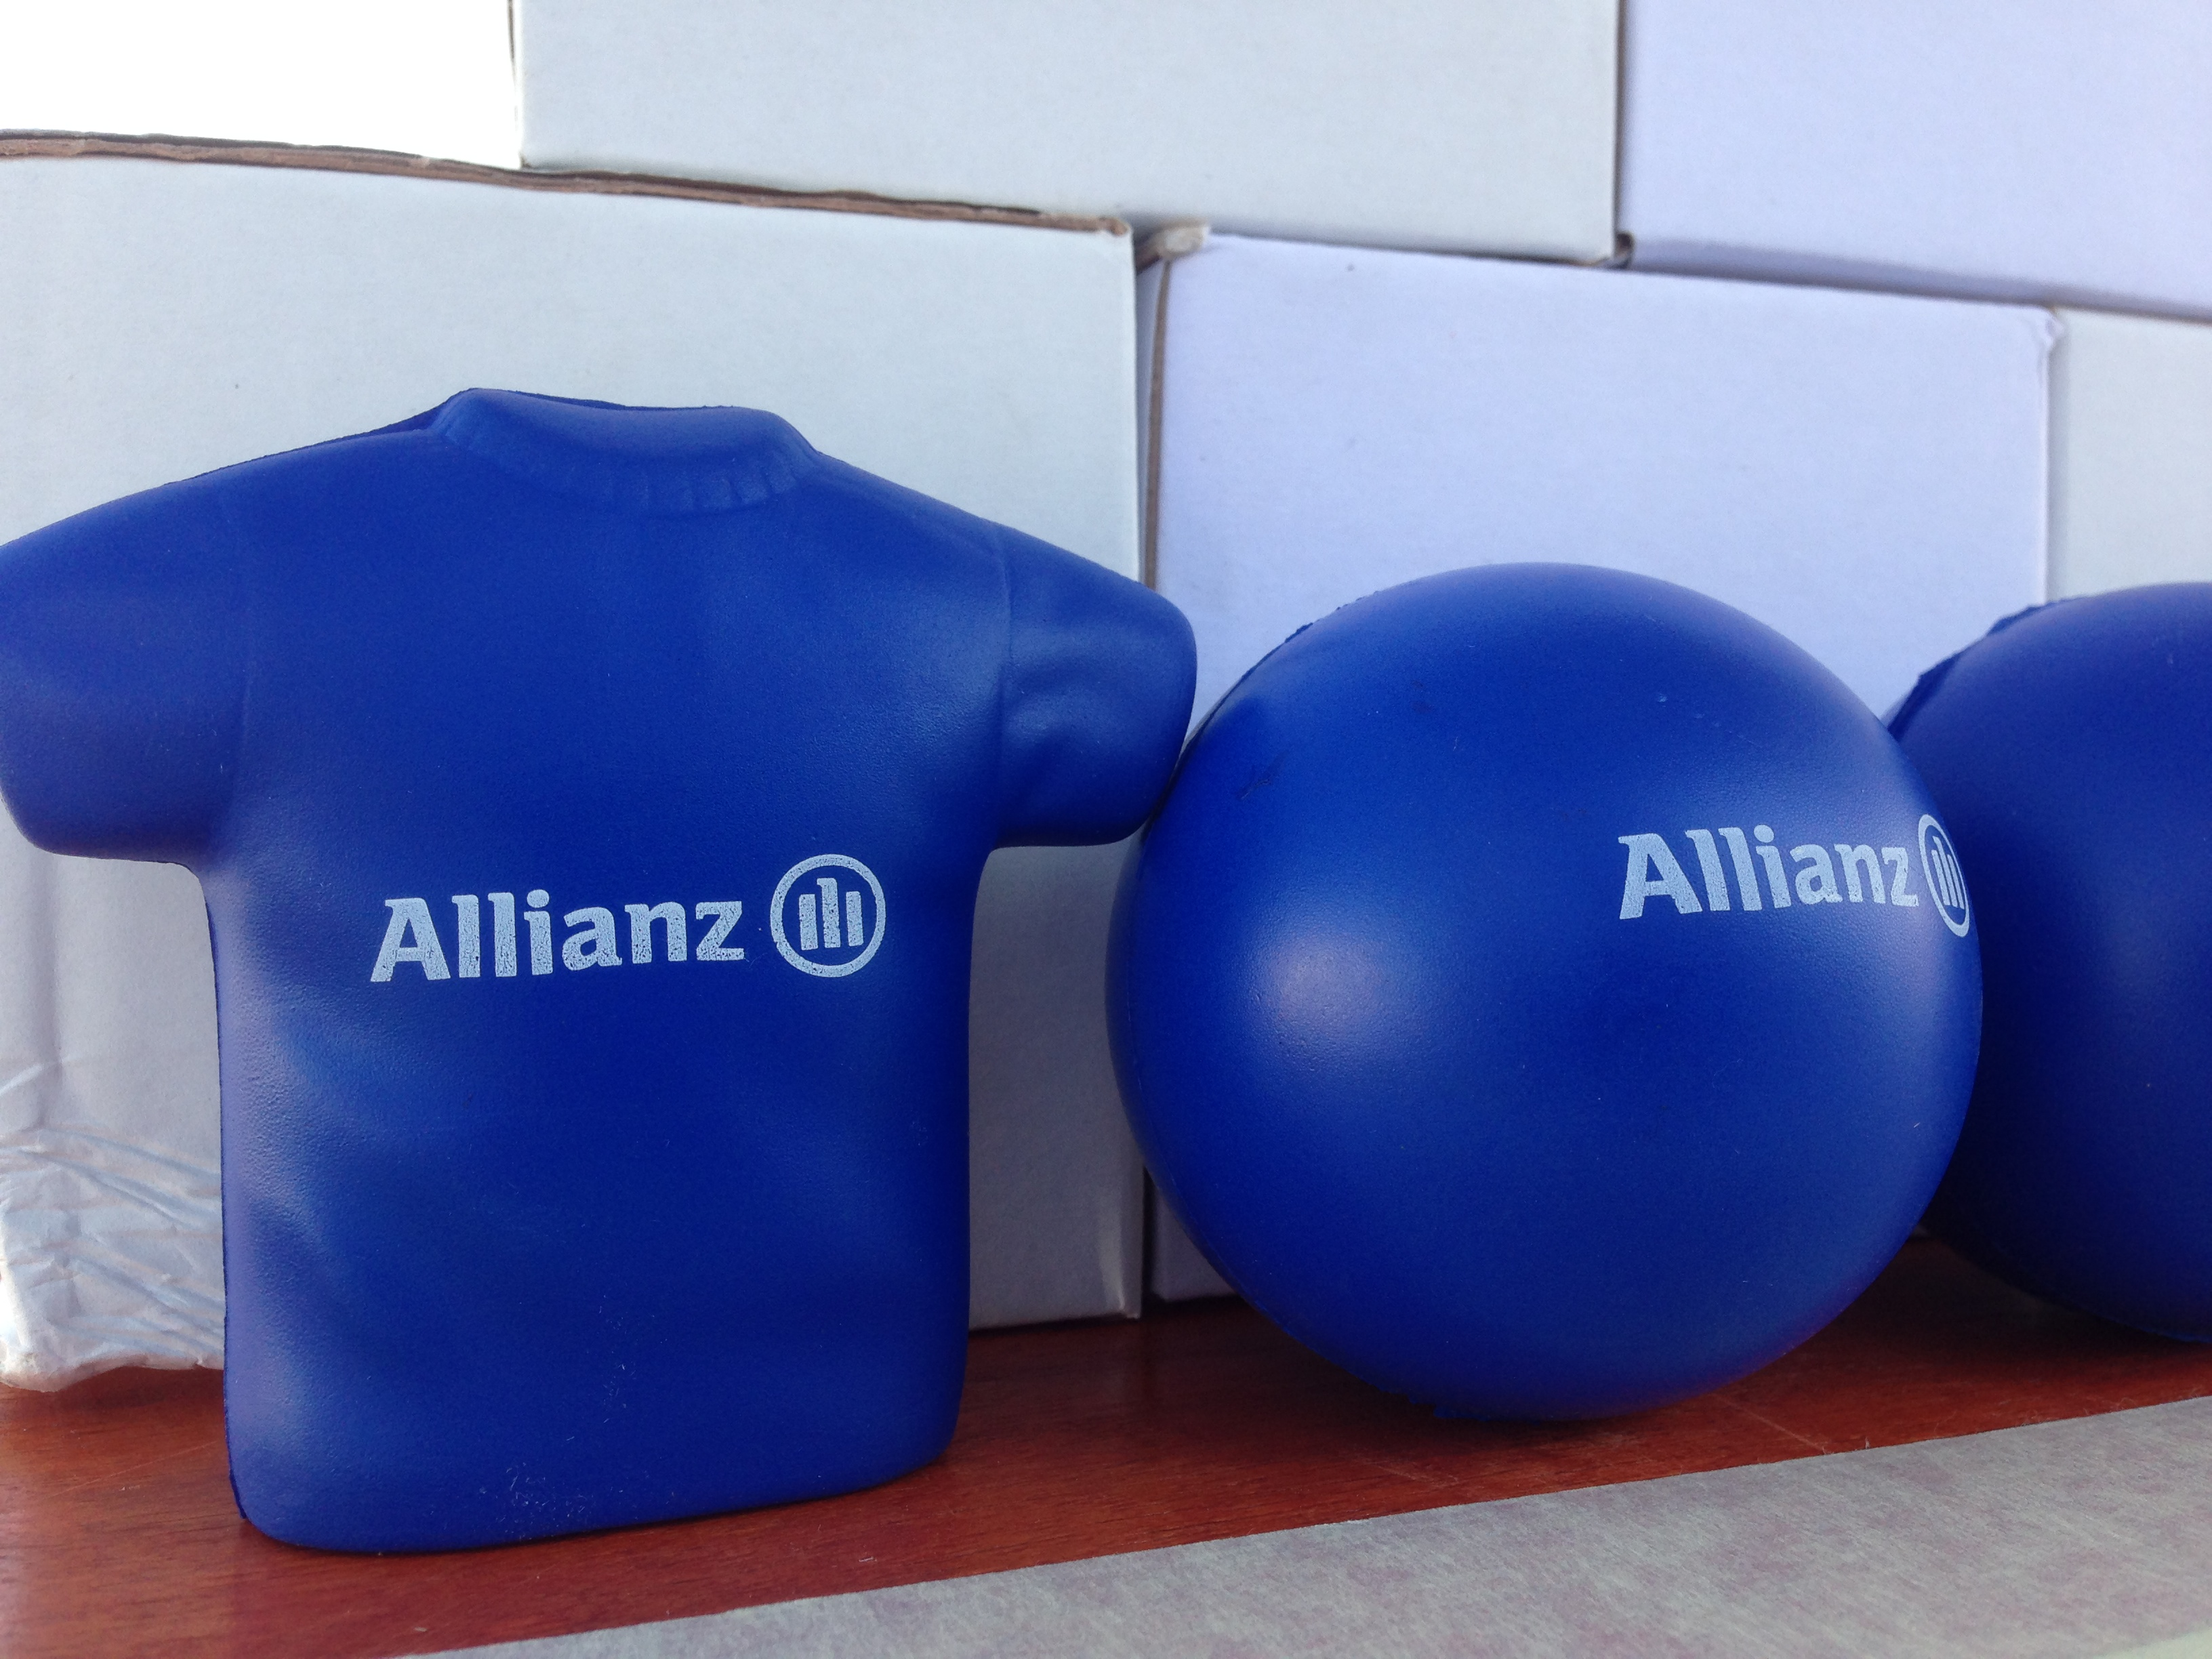 Premium gifts for Allianz